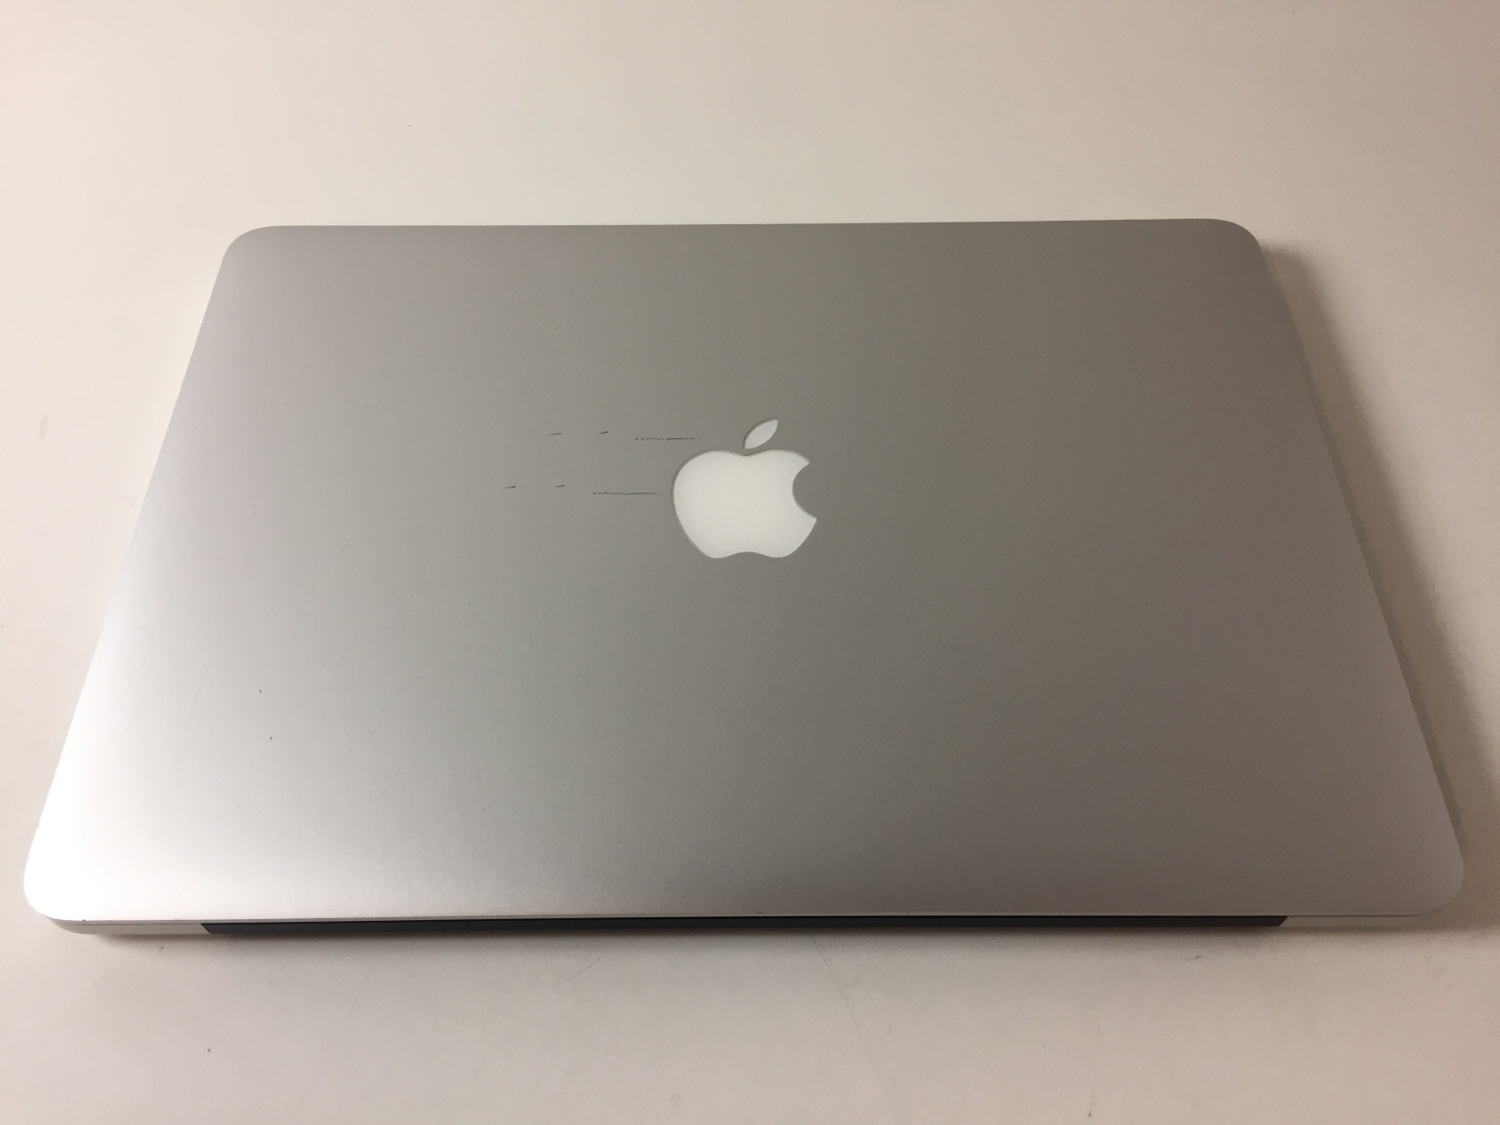 MacBook Pro (Retina 13-inchEarly 2015), Intel Dual Core i5 2,7GHz, 8GB 1867MHz DDR3, 128GB SSD, image 2